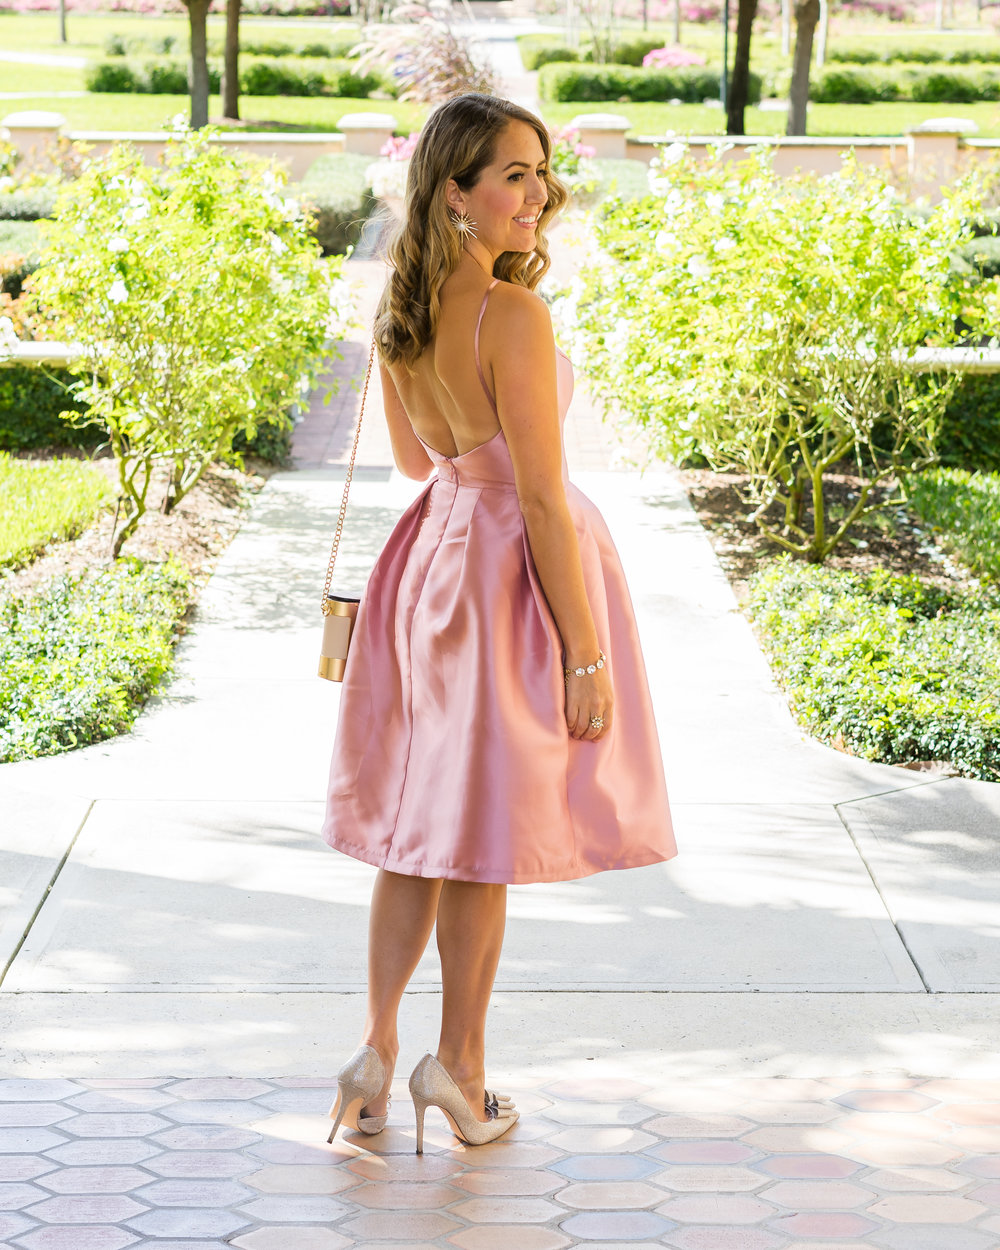 Blush pink party dress by Chi Chi London